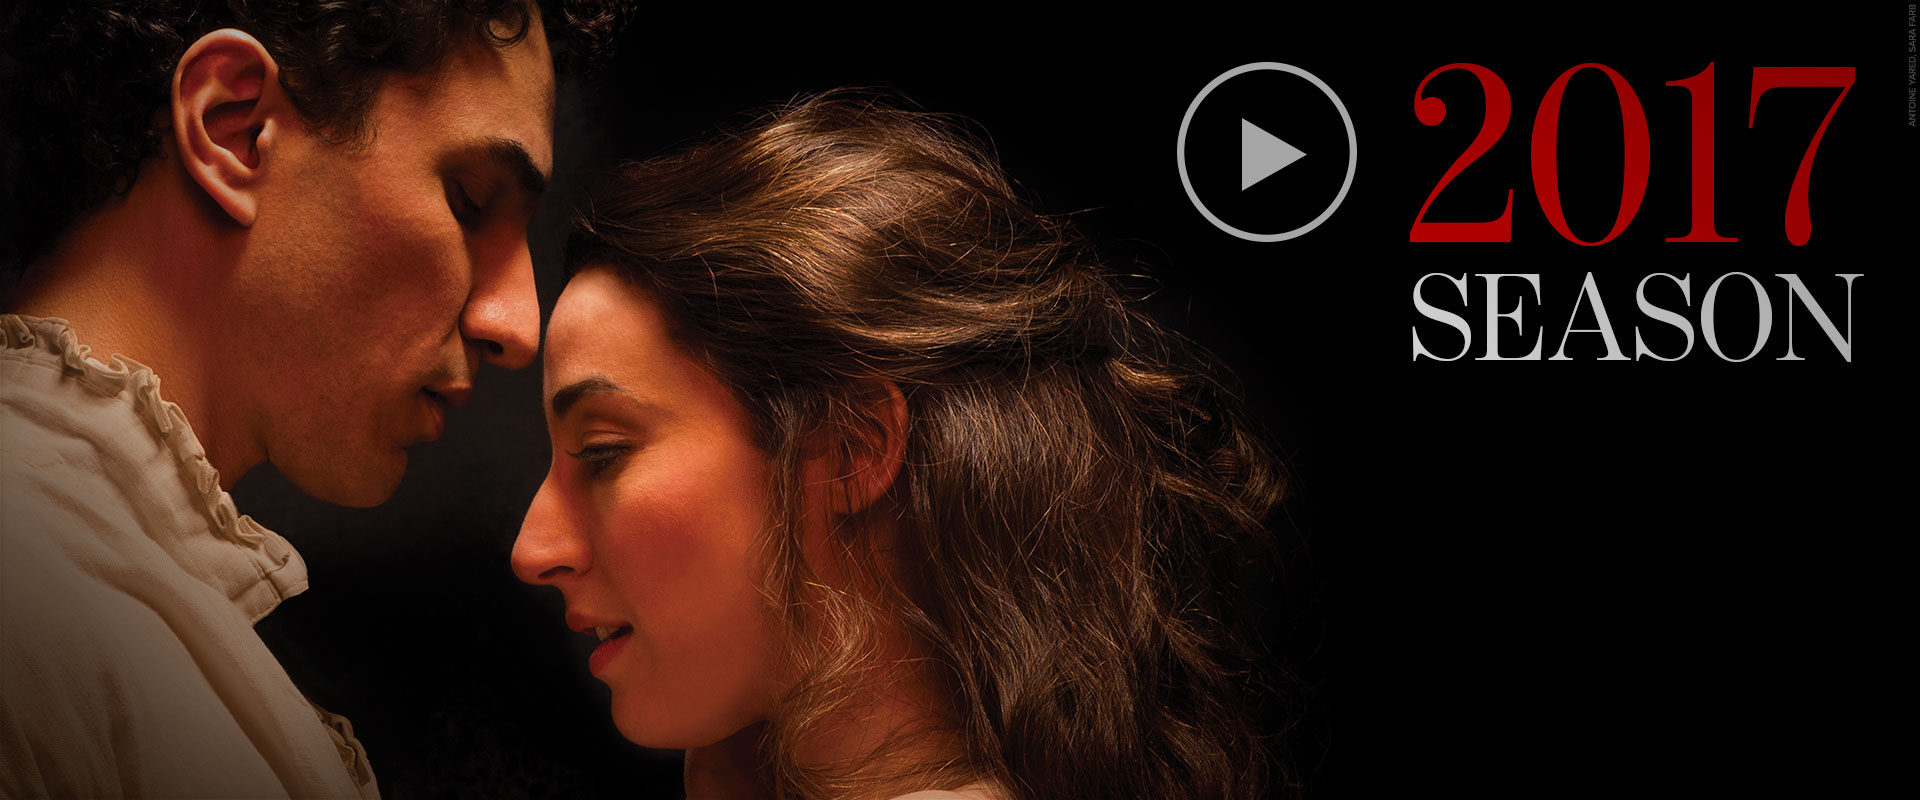 2017 Season Trailer - Romeo and Juliet production photo